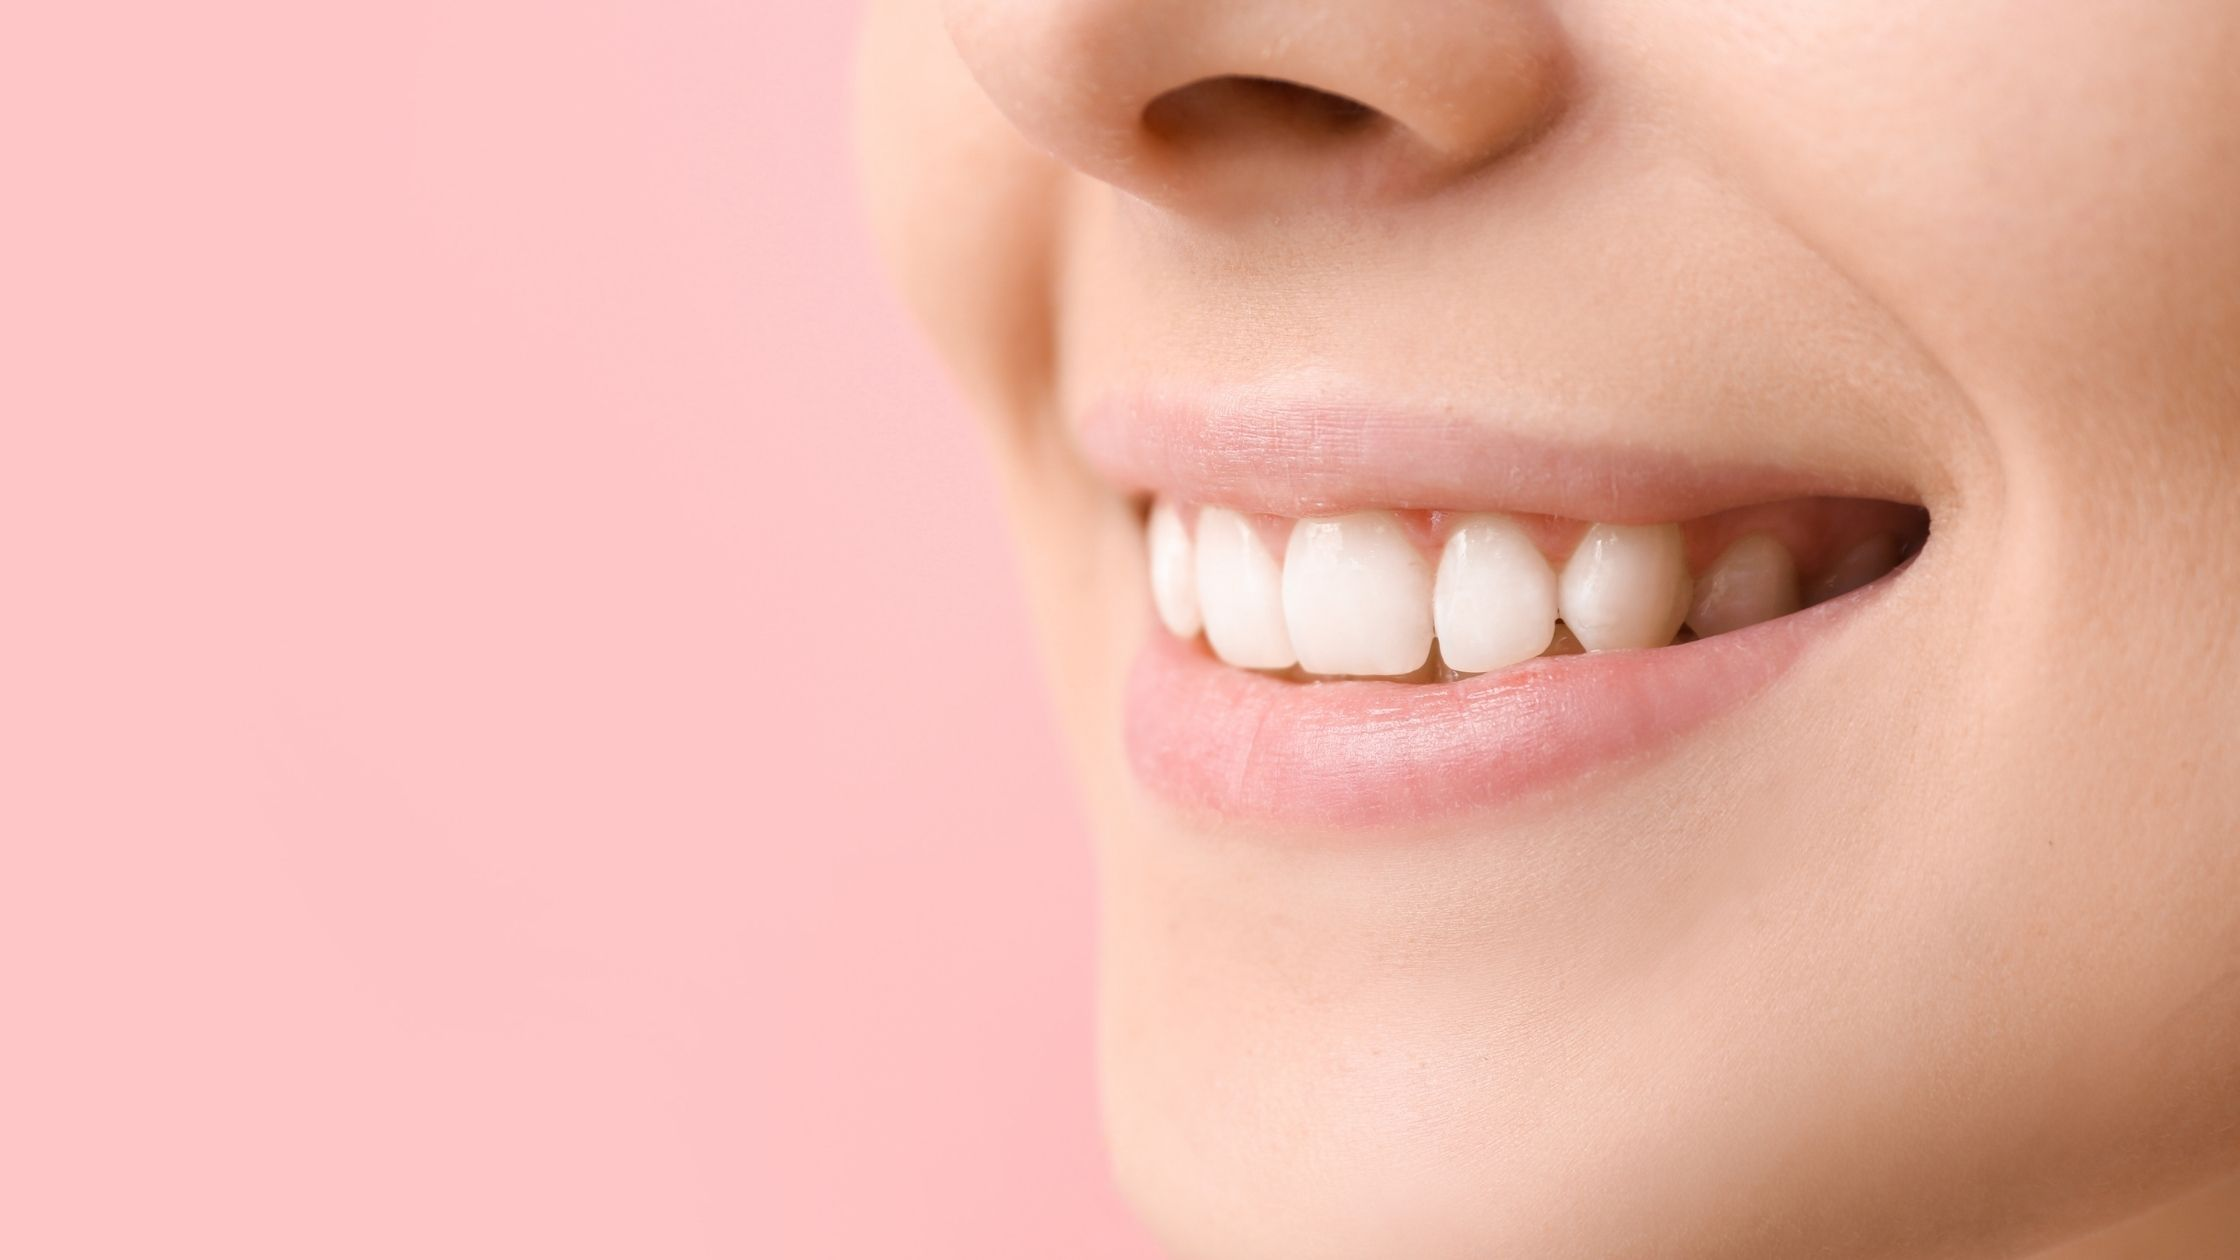 Oral Health and How it Affects Your Overall Wellness